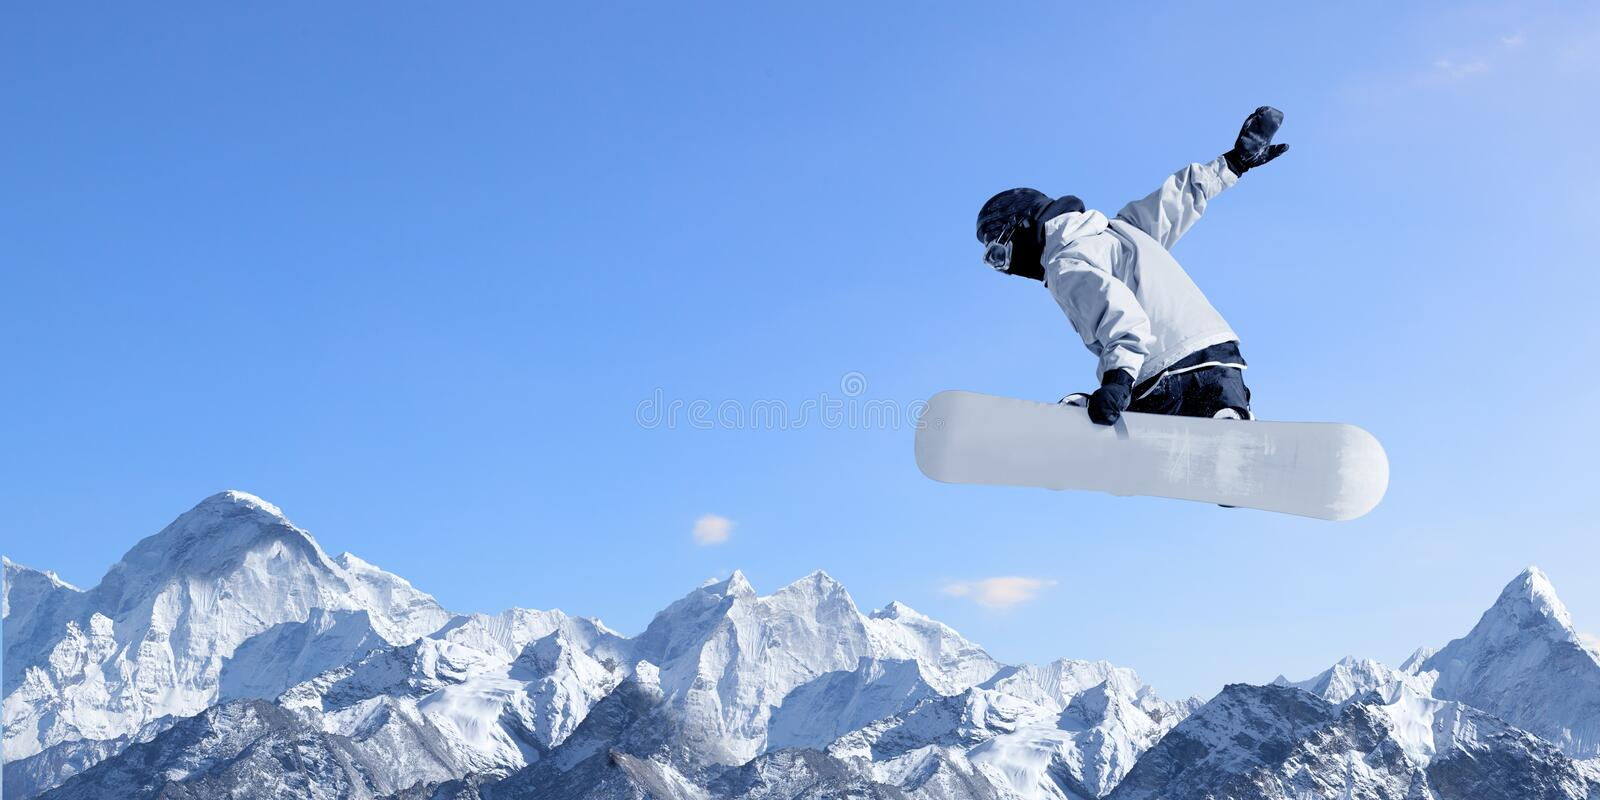 Snowboarding sport stock photo. Image of extreme, cold ...